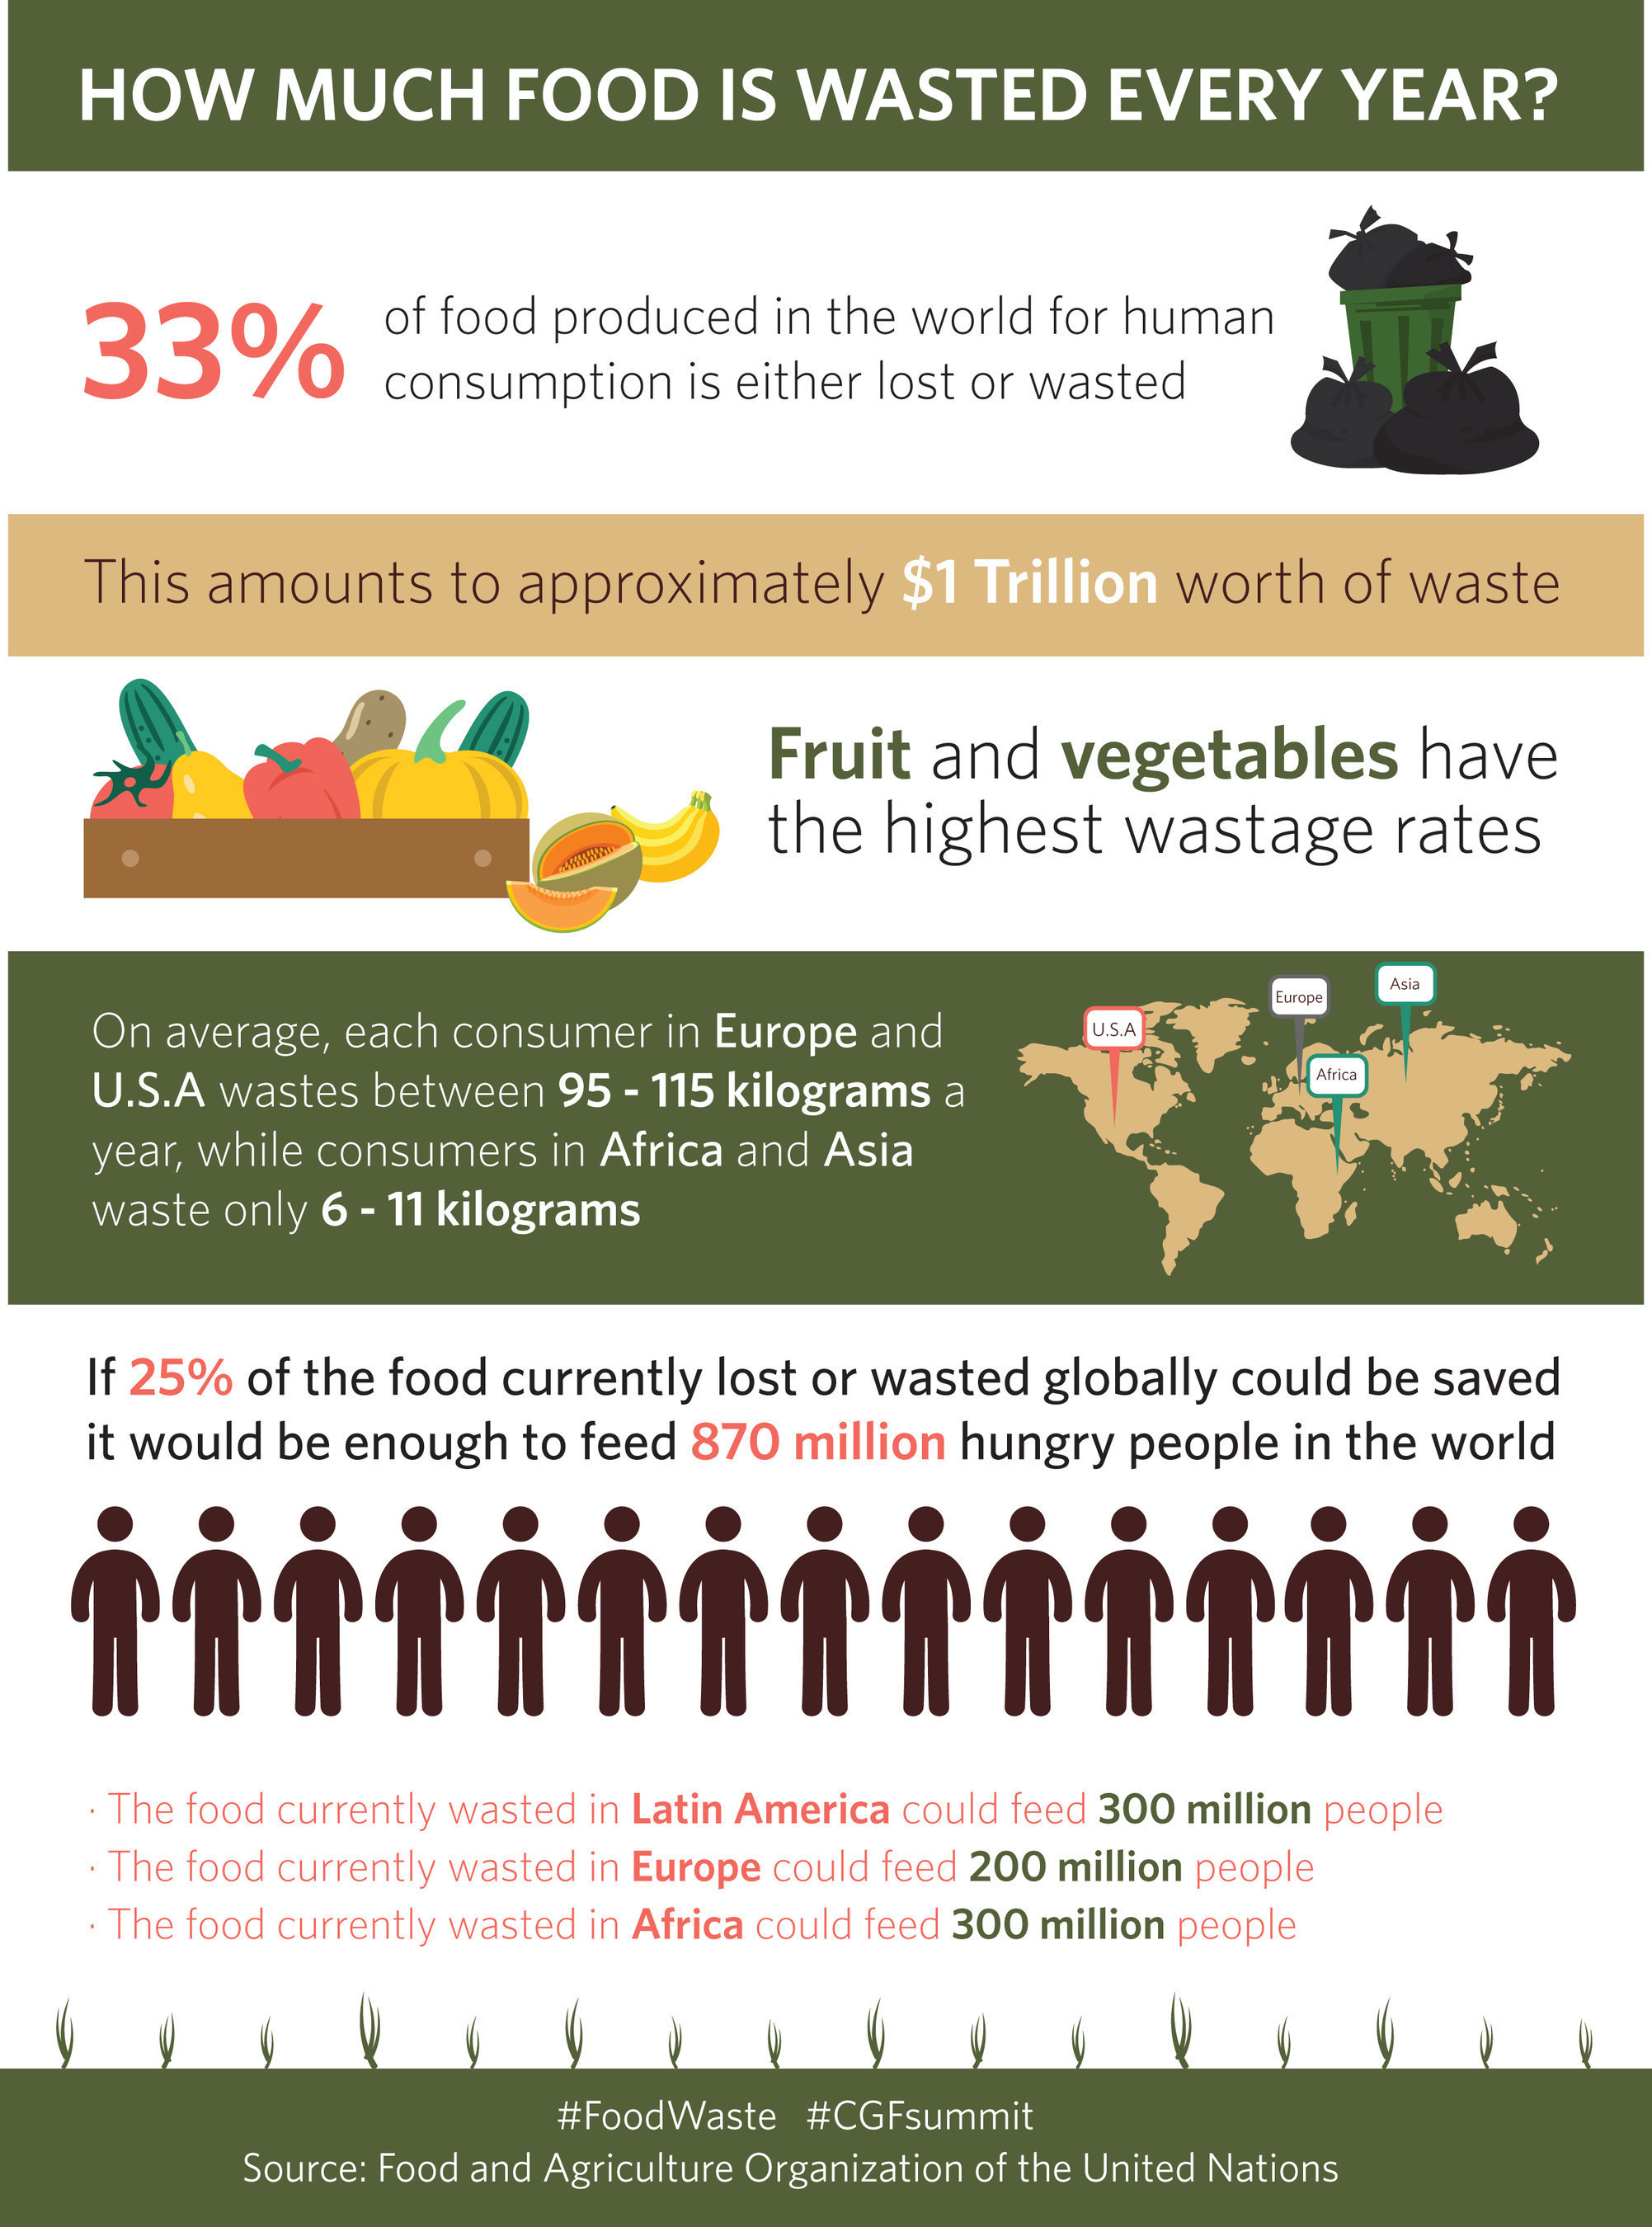 How much food is wasted every year?